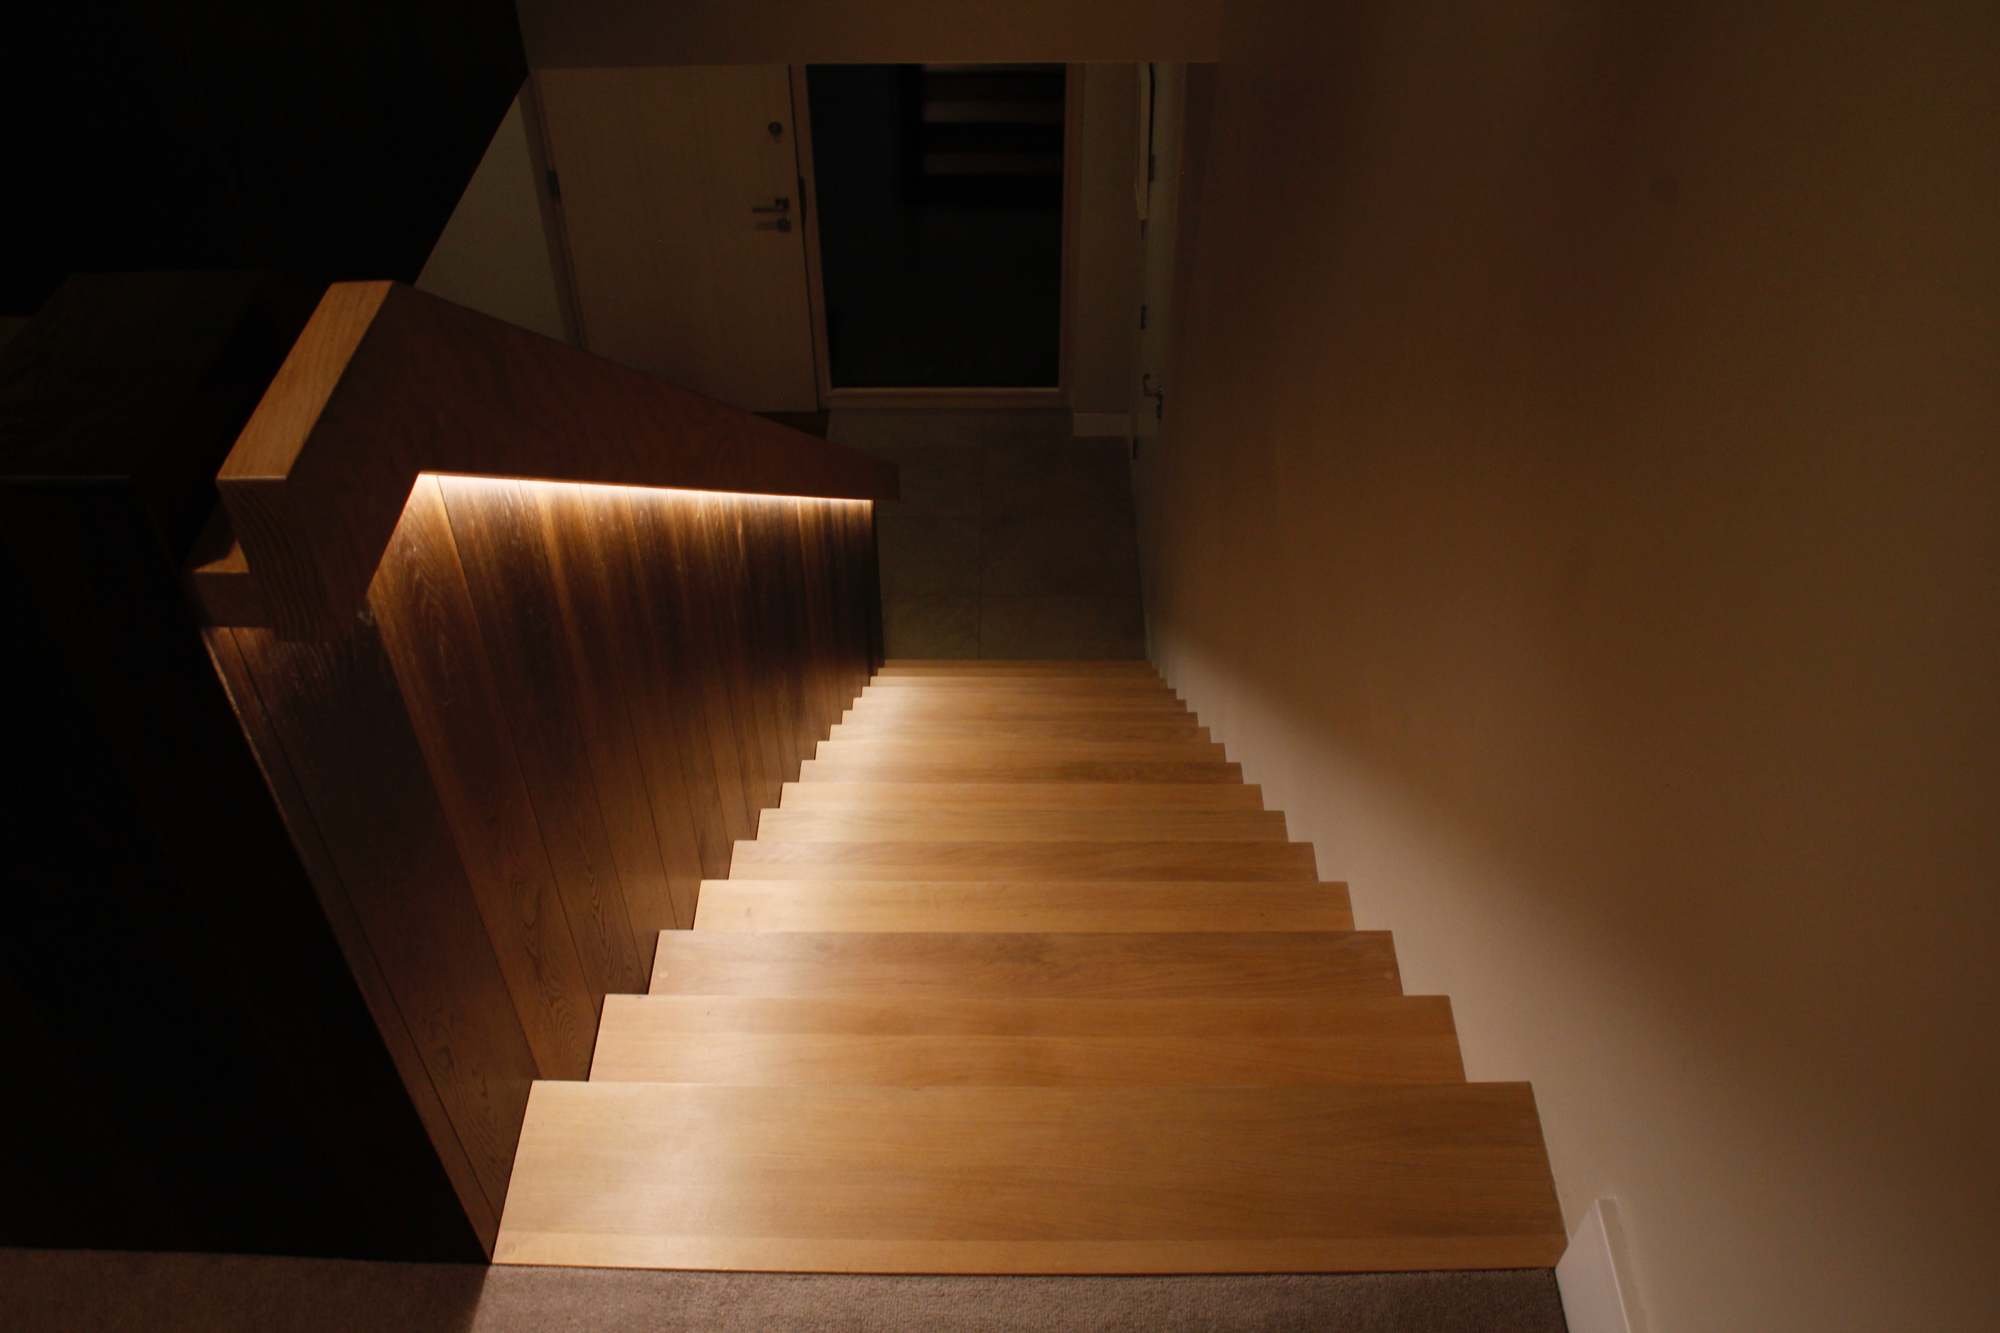 Staircase night time